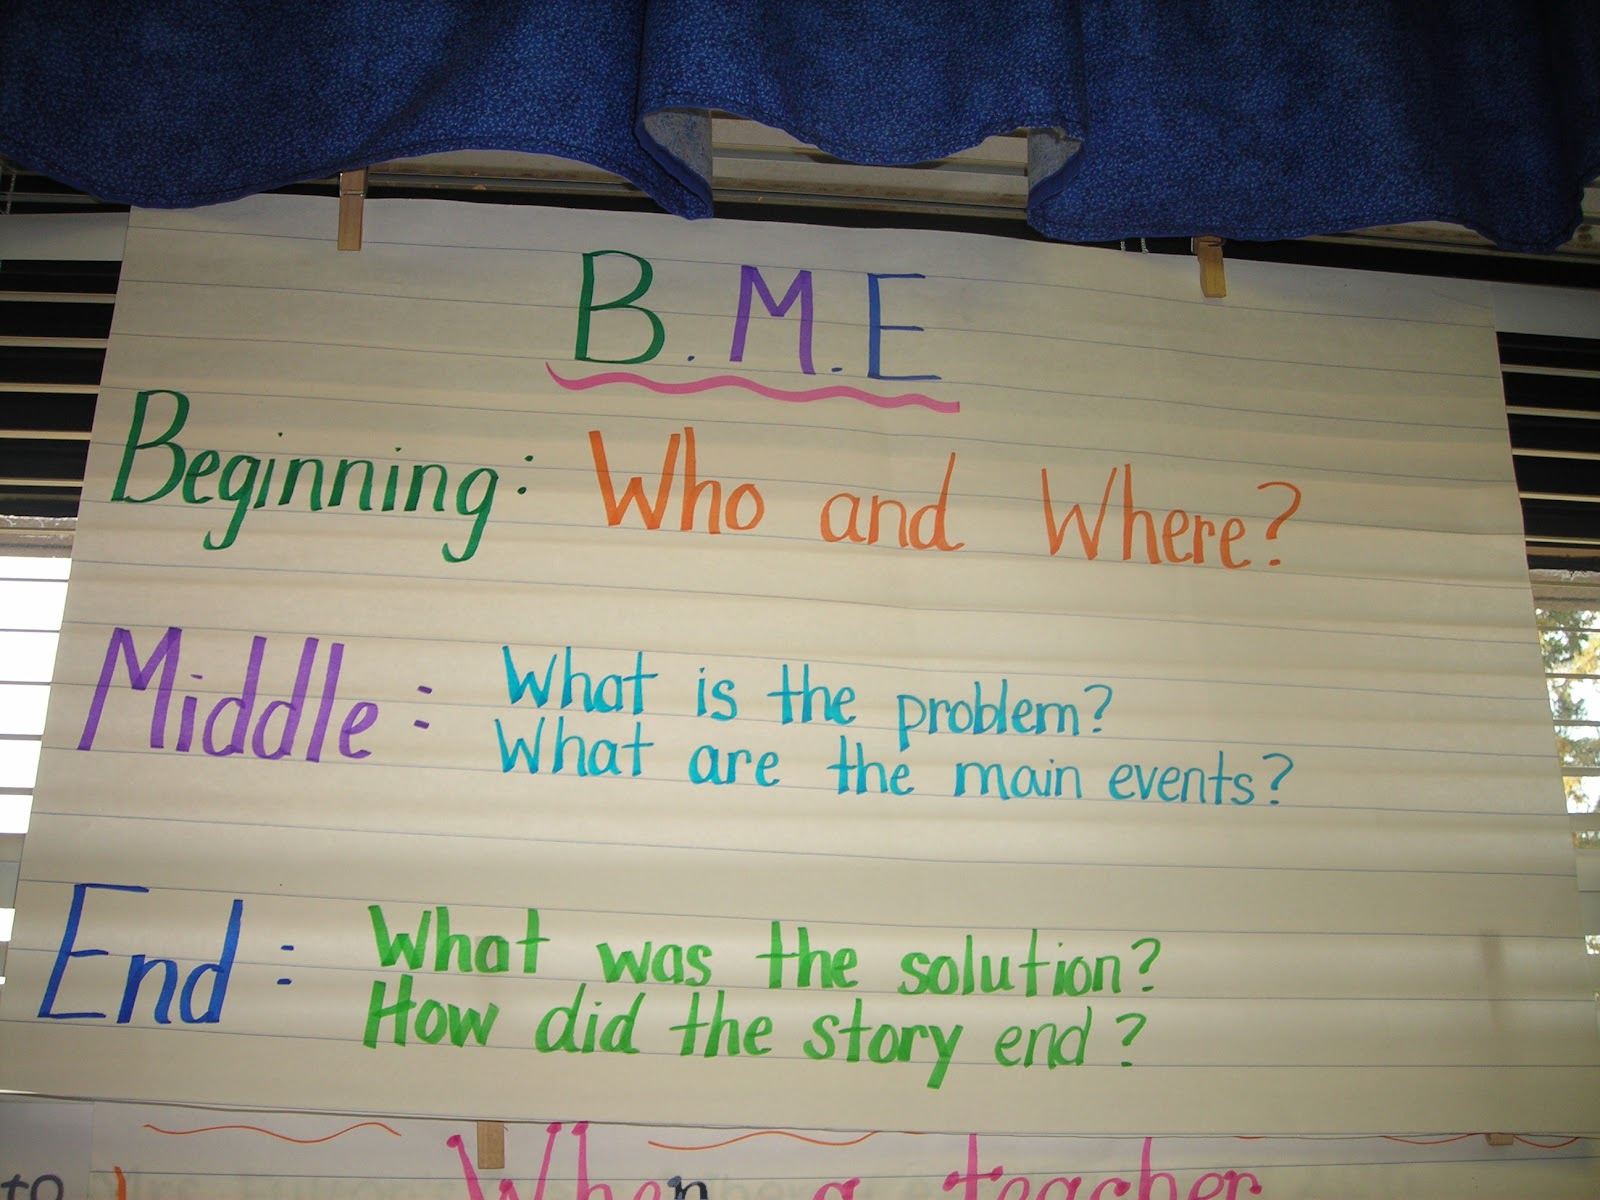 Db Ae A Ae D F A Eea additionally E Feaf E D B B E Aaa E further E F C F F Ed Ee Cbd in addition Anchor Charts Transitions in addition Syn Bant B. on character anchor chart for 1st grade